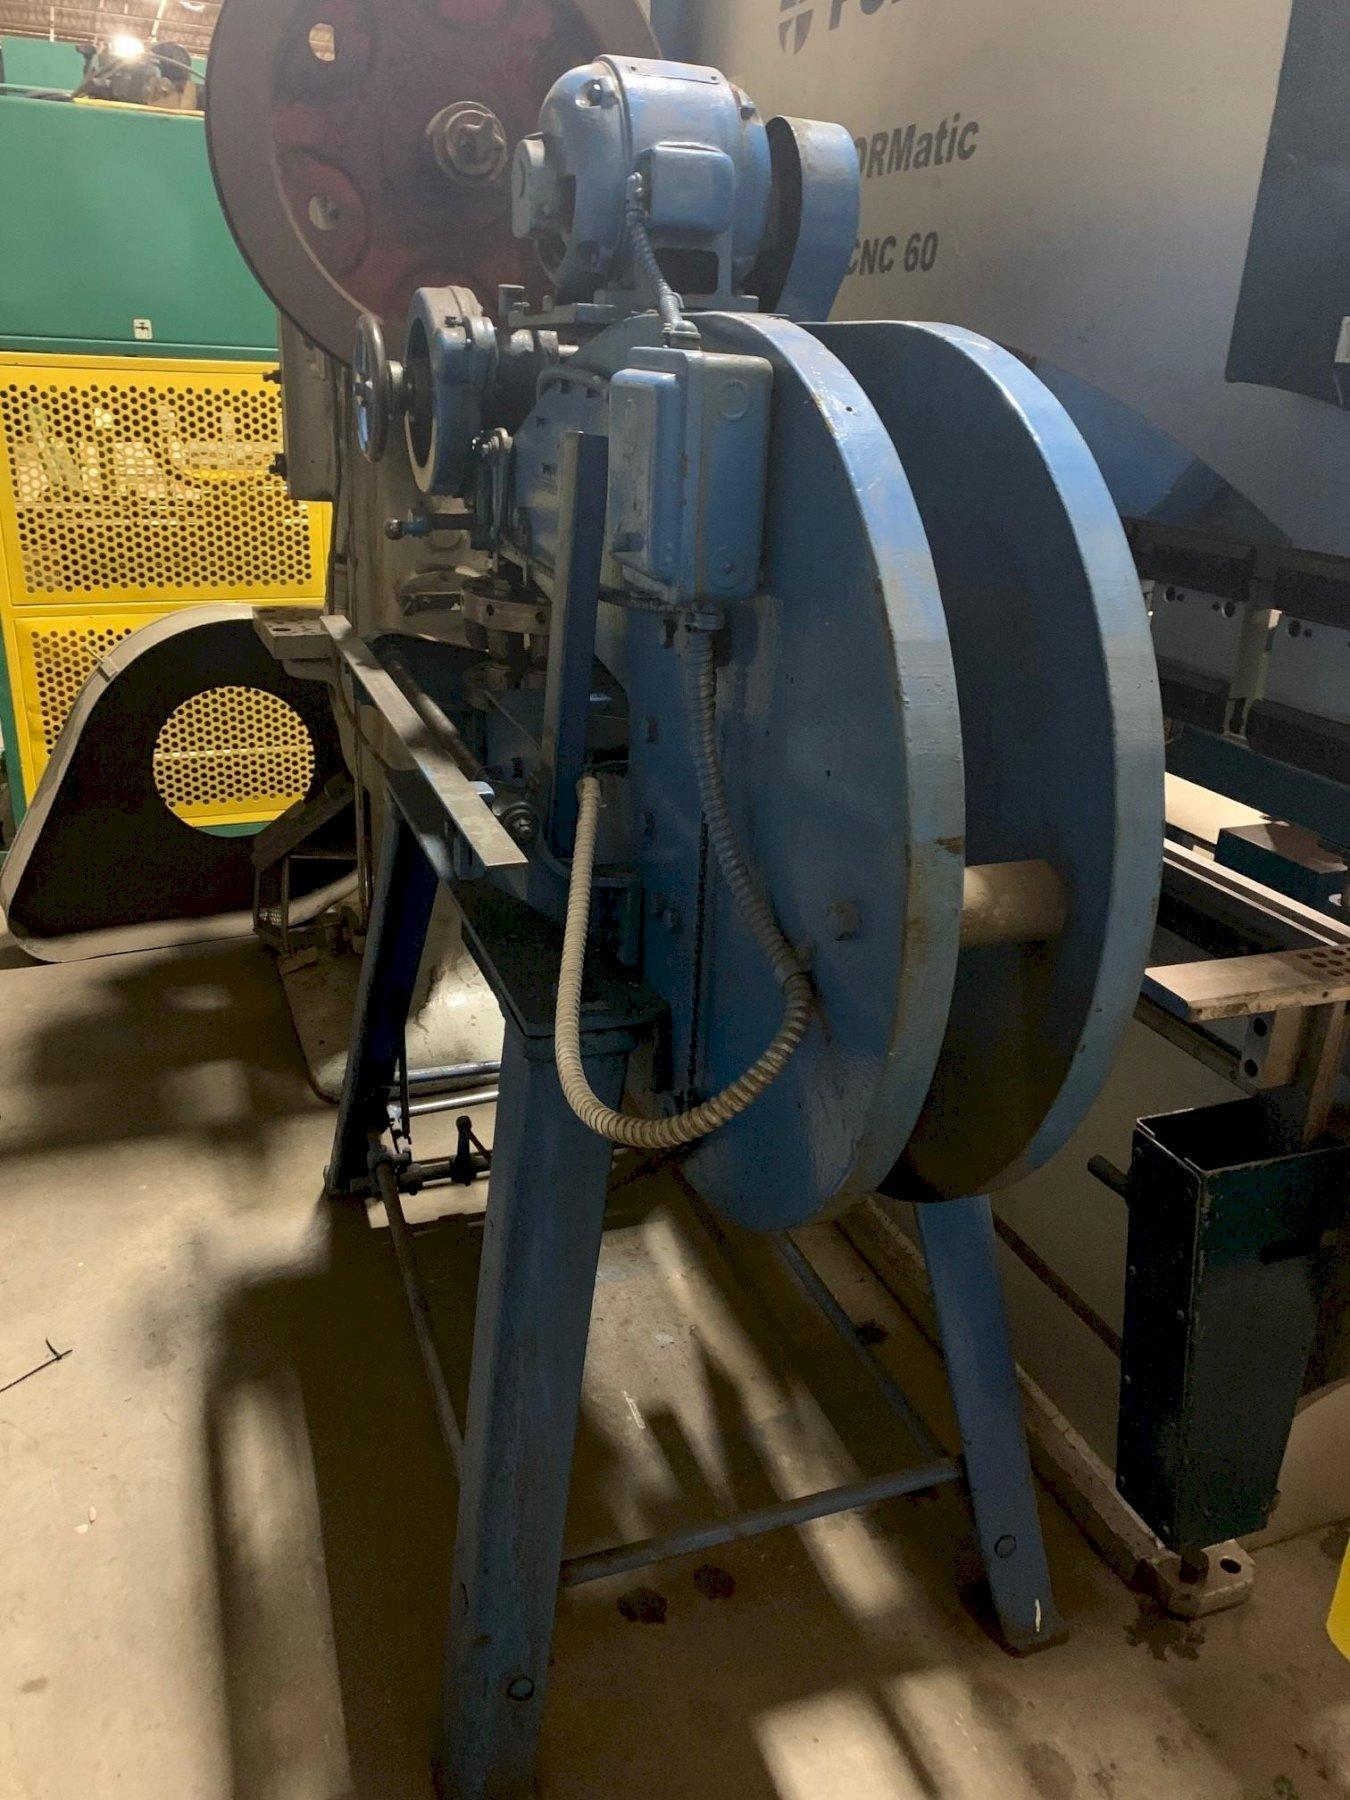 USED WIEDEMANN 12 STATION POWERED TURRET PUNCH, Stock# 10825